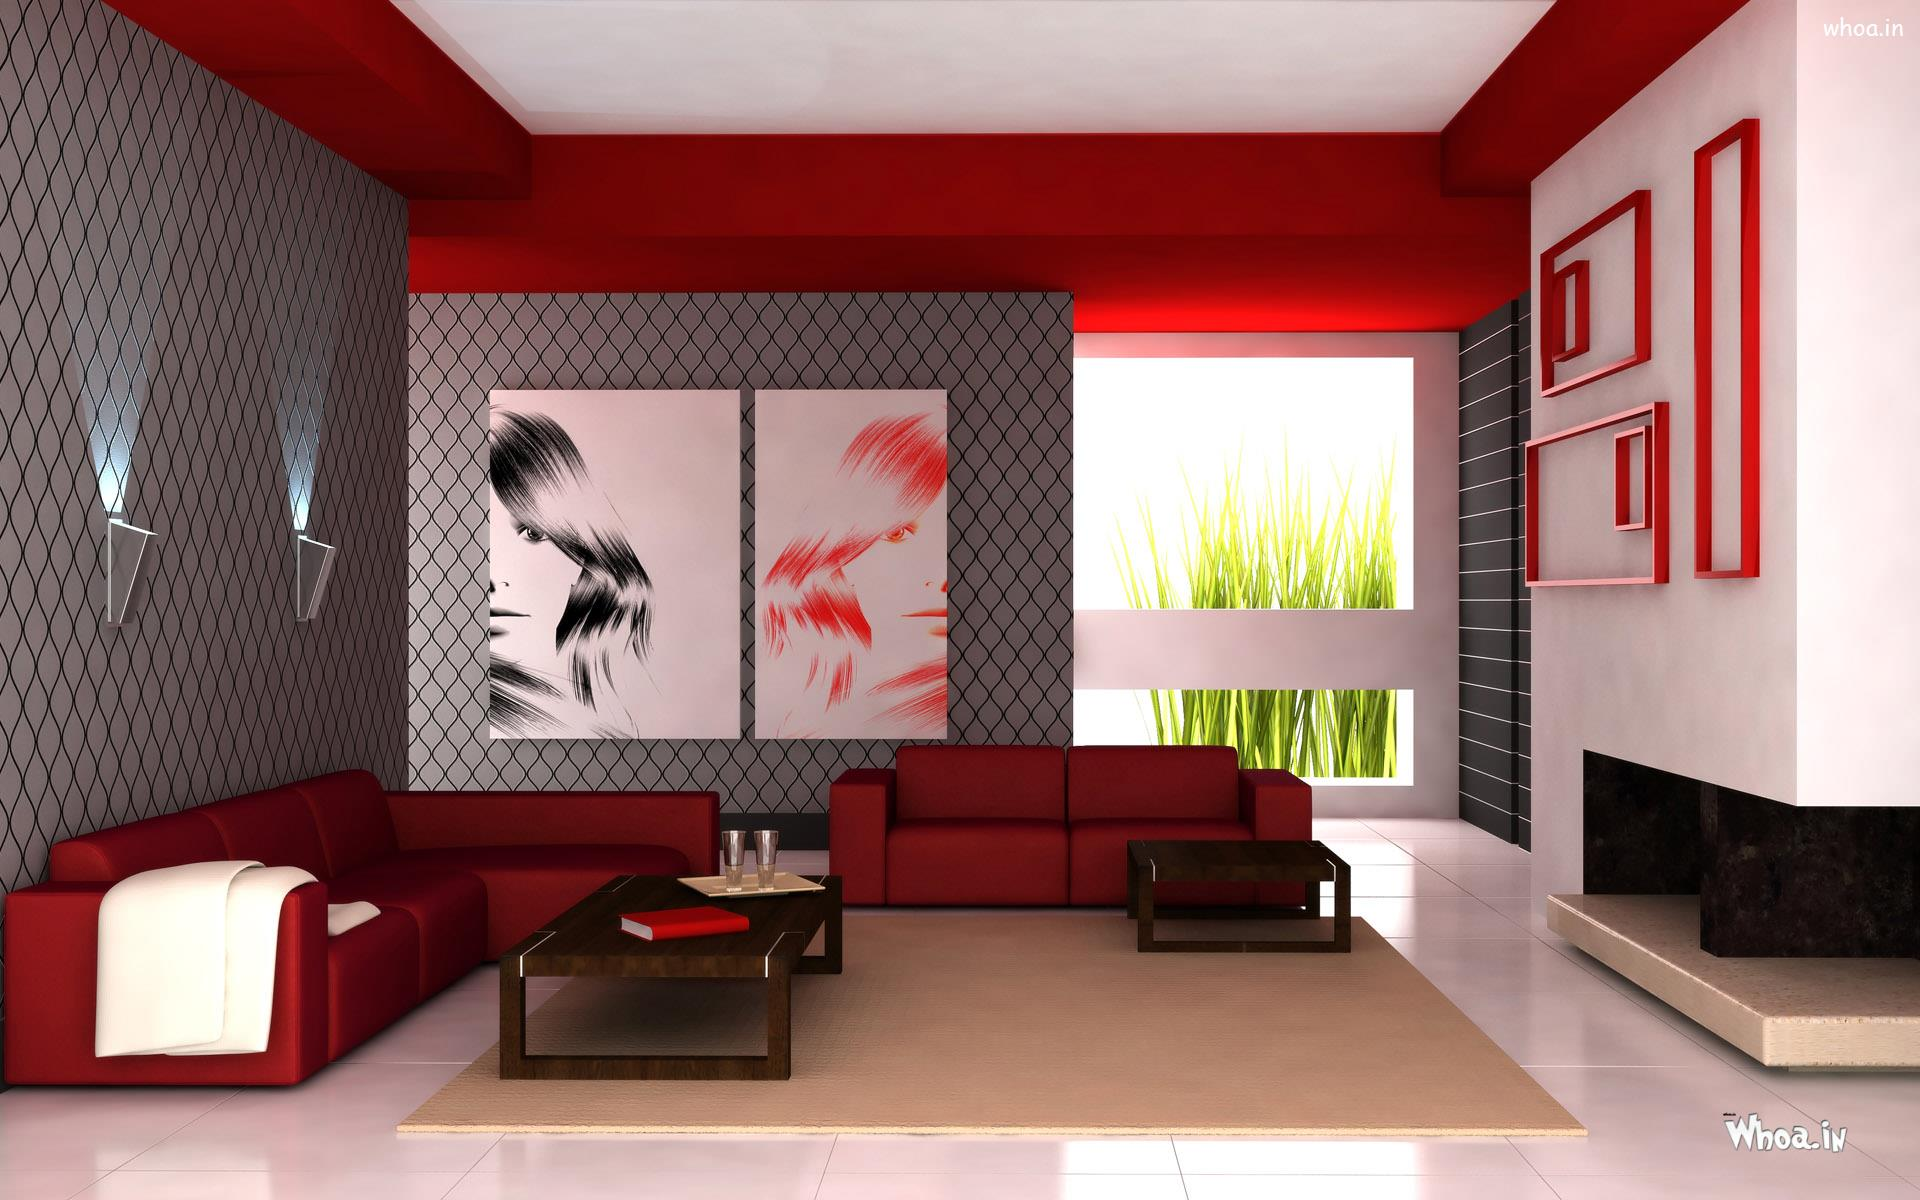 3 X 2 Red Leather Sofa With Multi Color Wall For Living Room Part 13